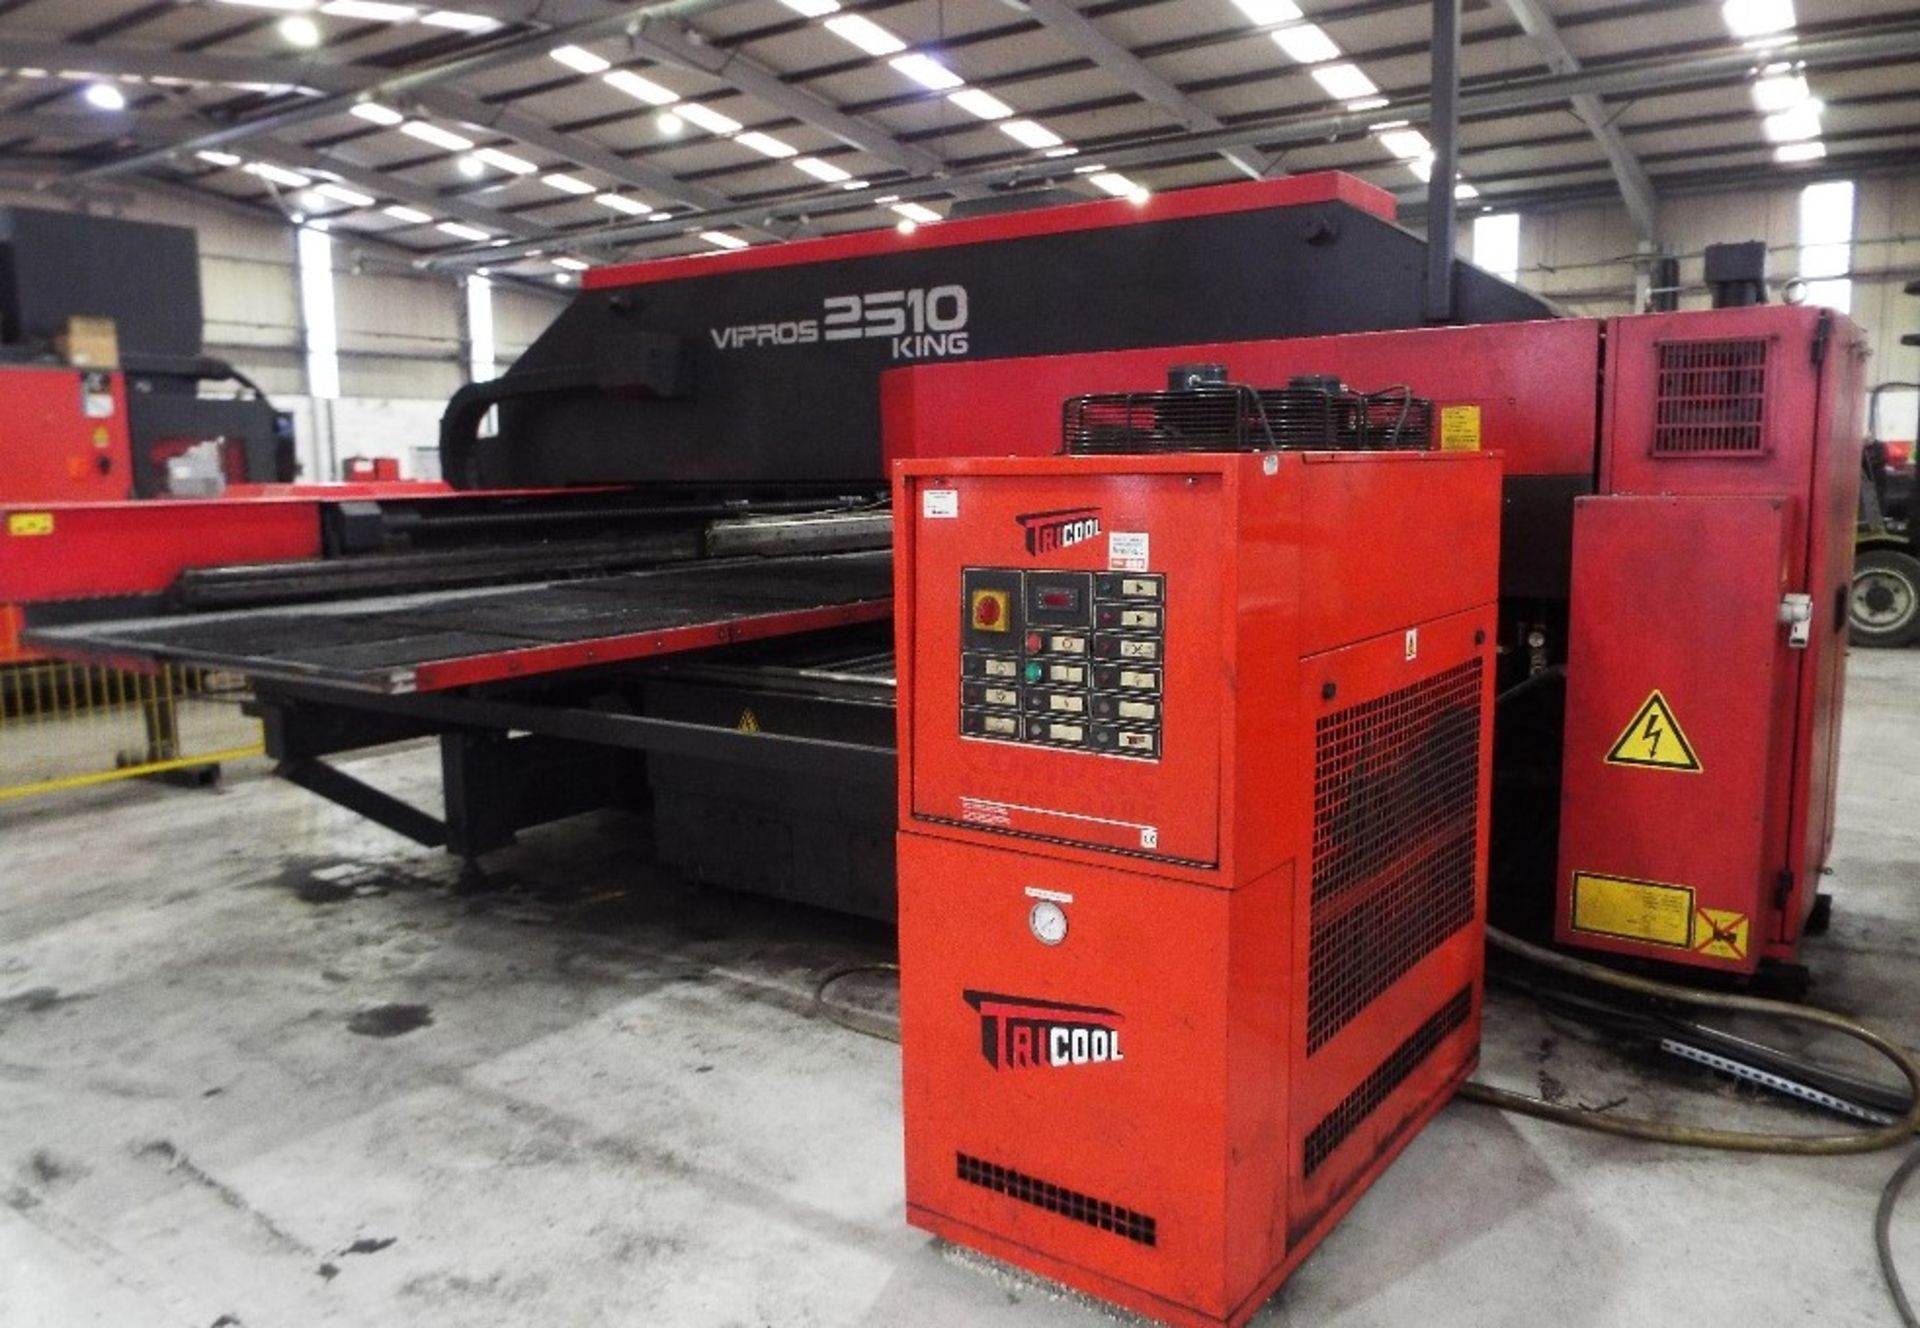 Lot 5 - Amada Vipros 2510 King Turret Punch Press Cell